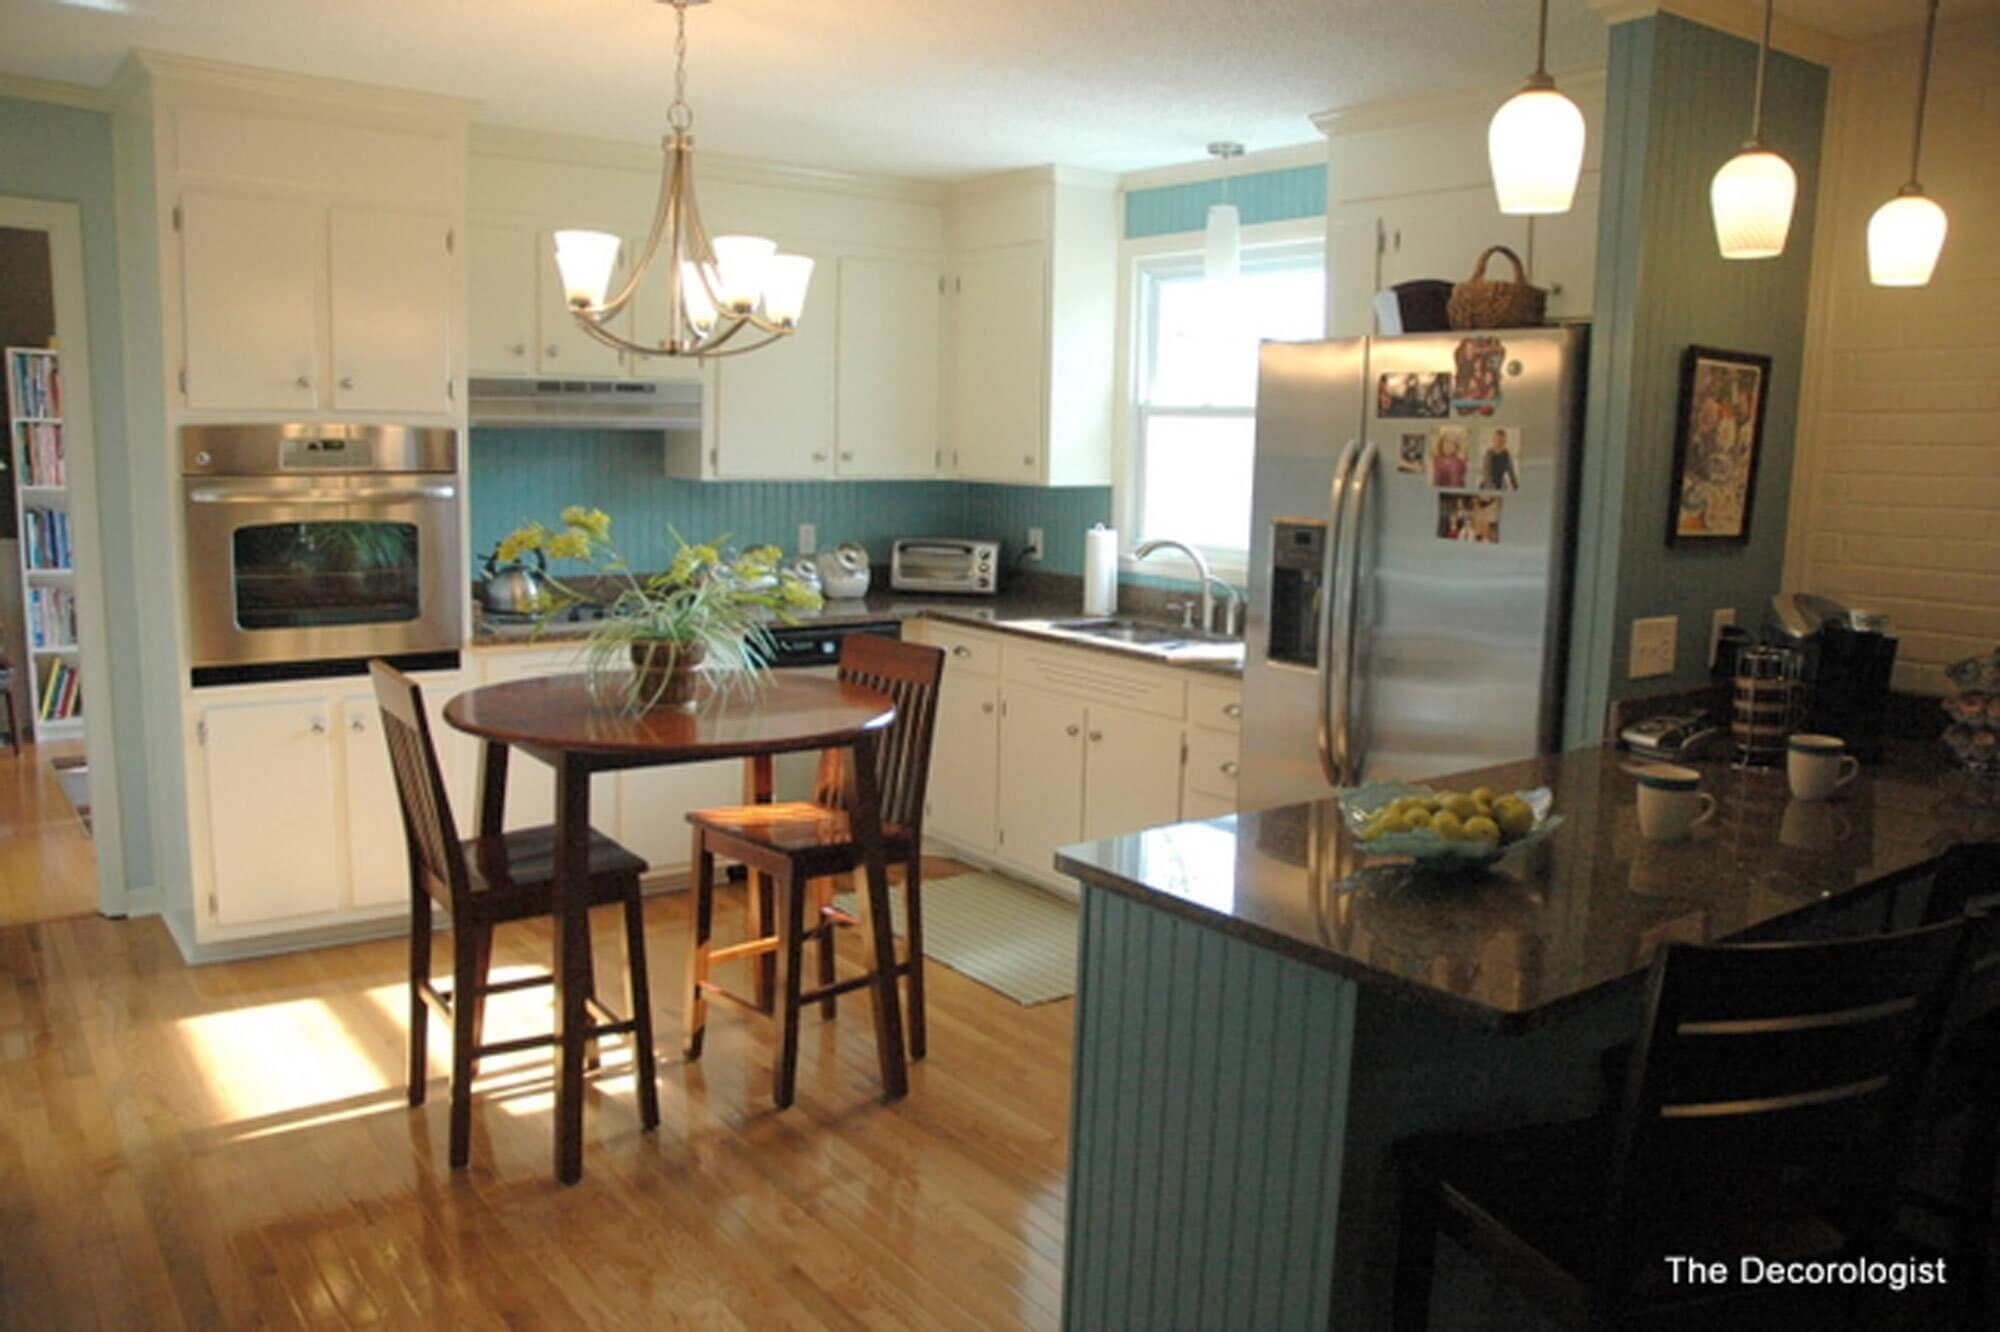 A Fresh Look for any Kitchen